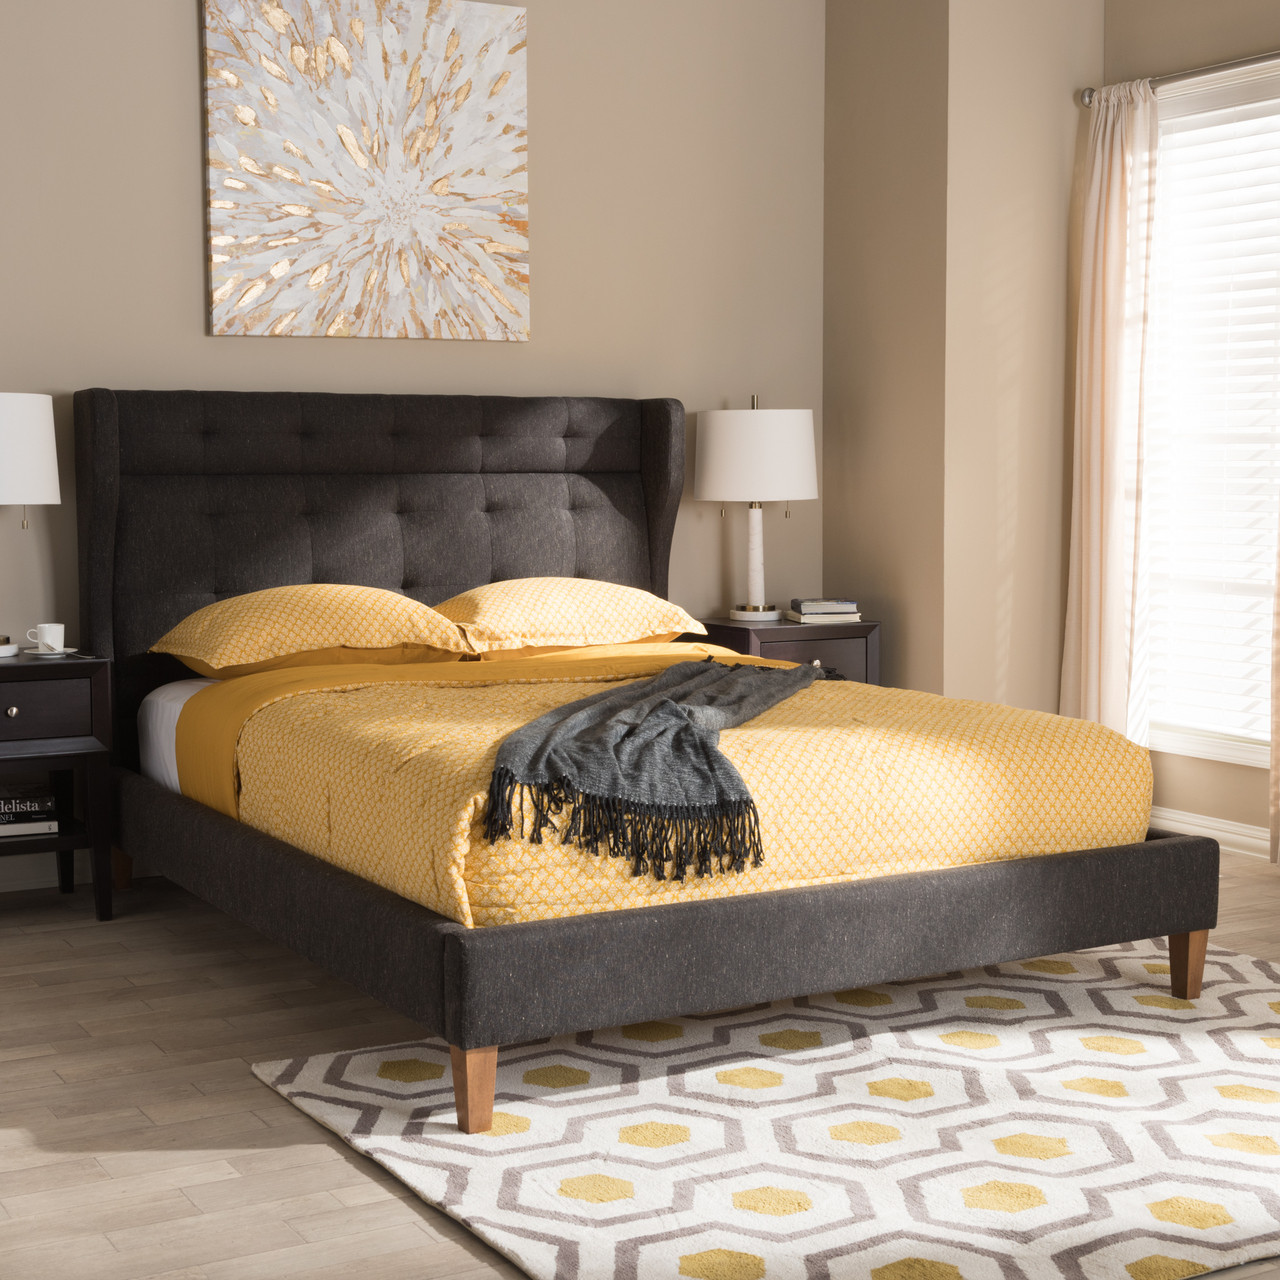 Is A Platform Bed Comfortable Baxton Studio Casper Mid Century Modern Charcoal Grey Fabric Upholstered Platform Bed